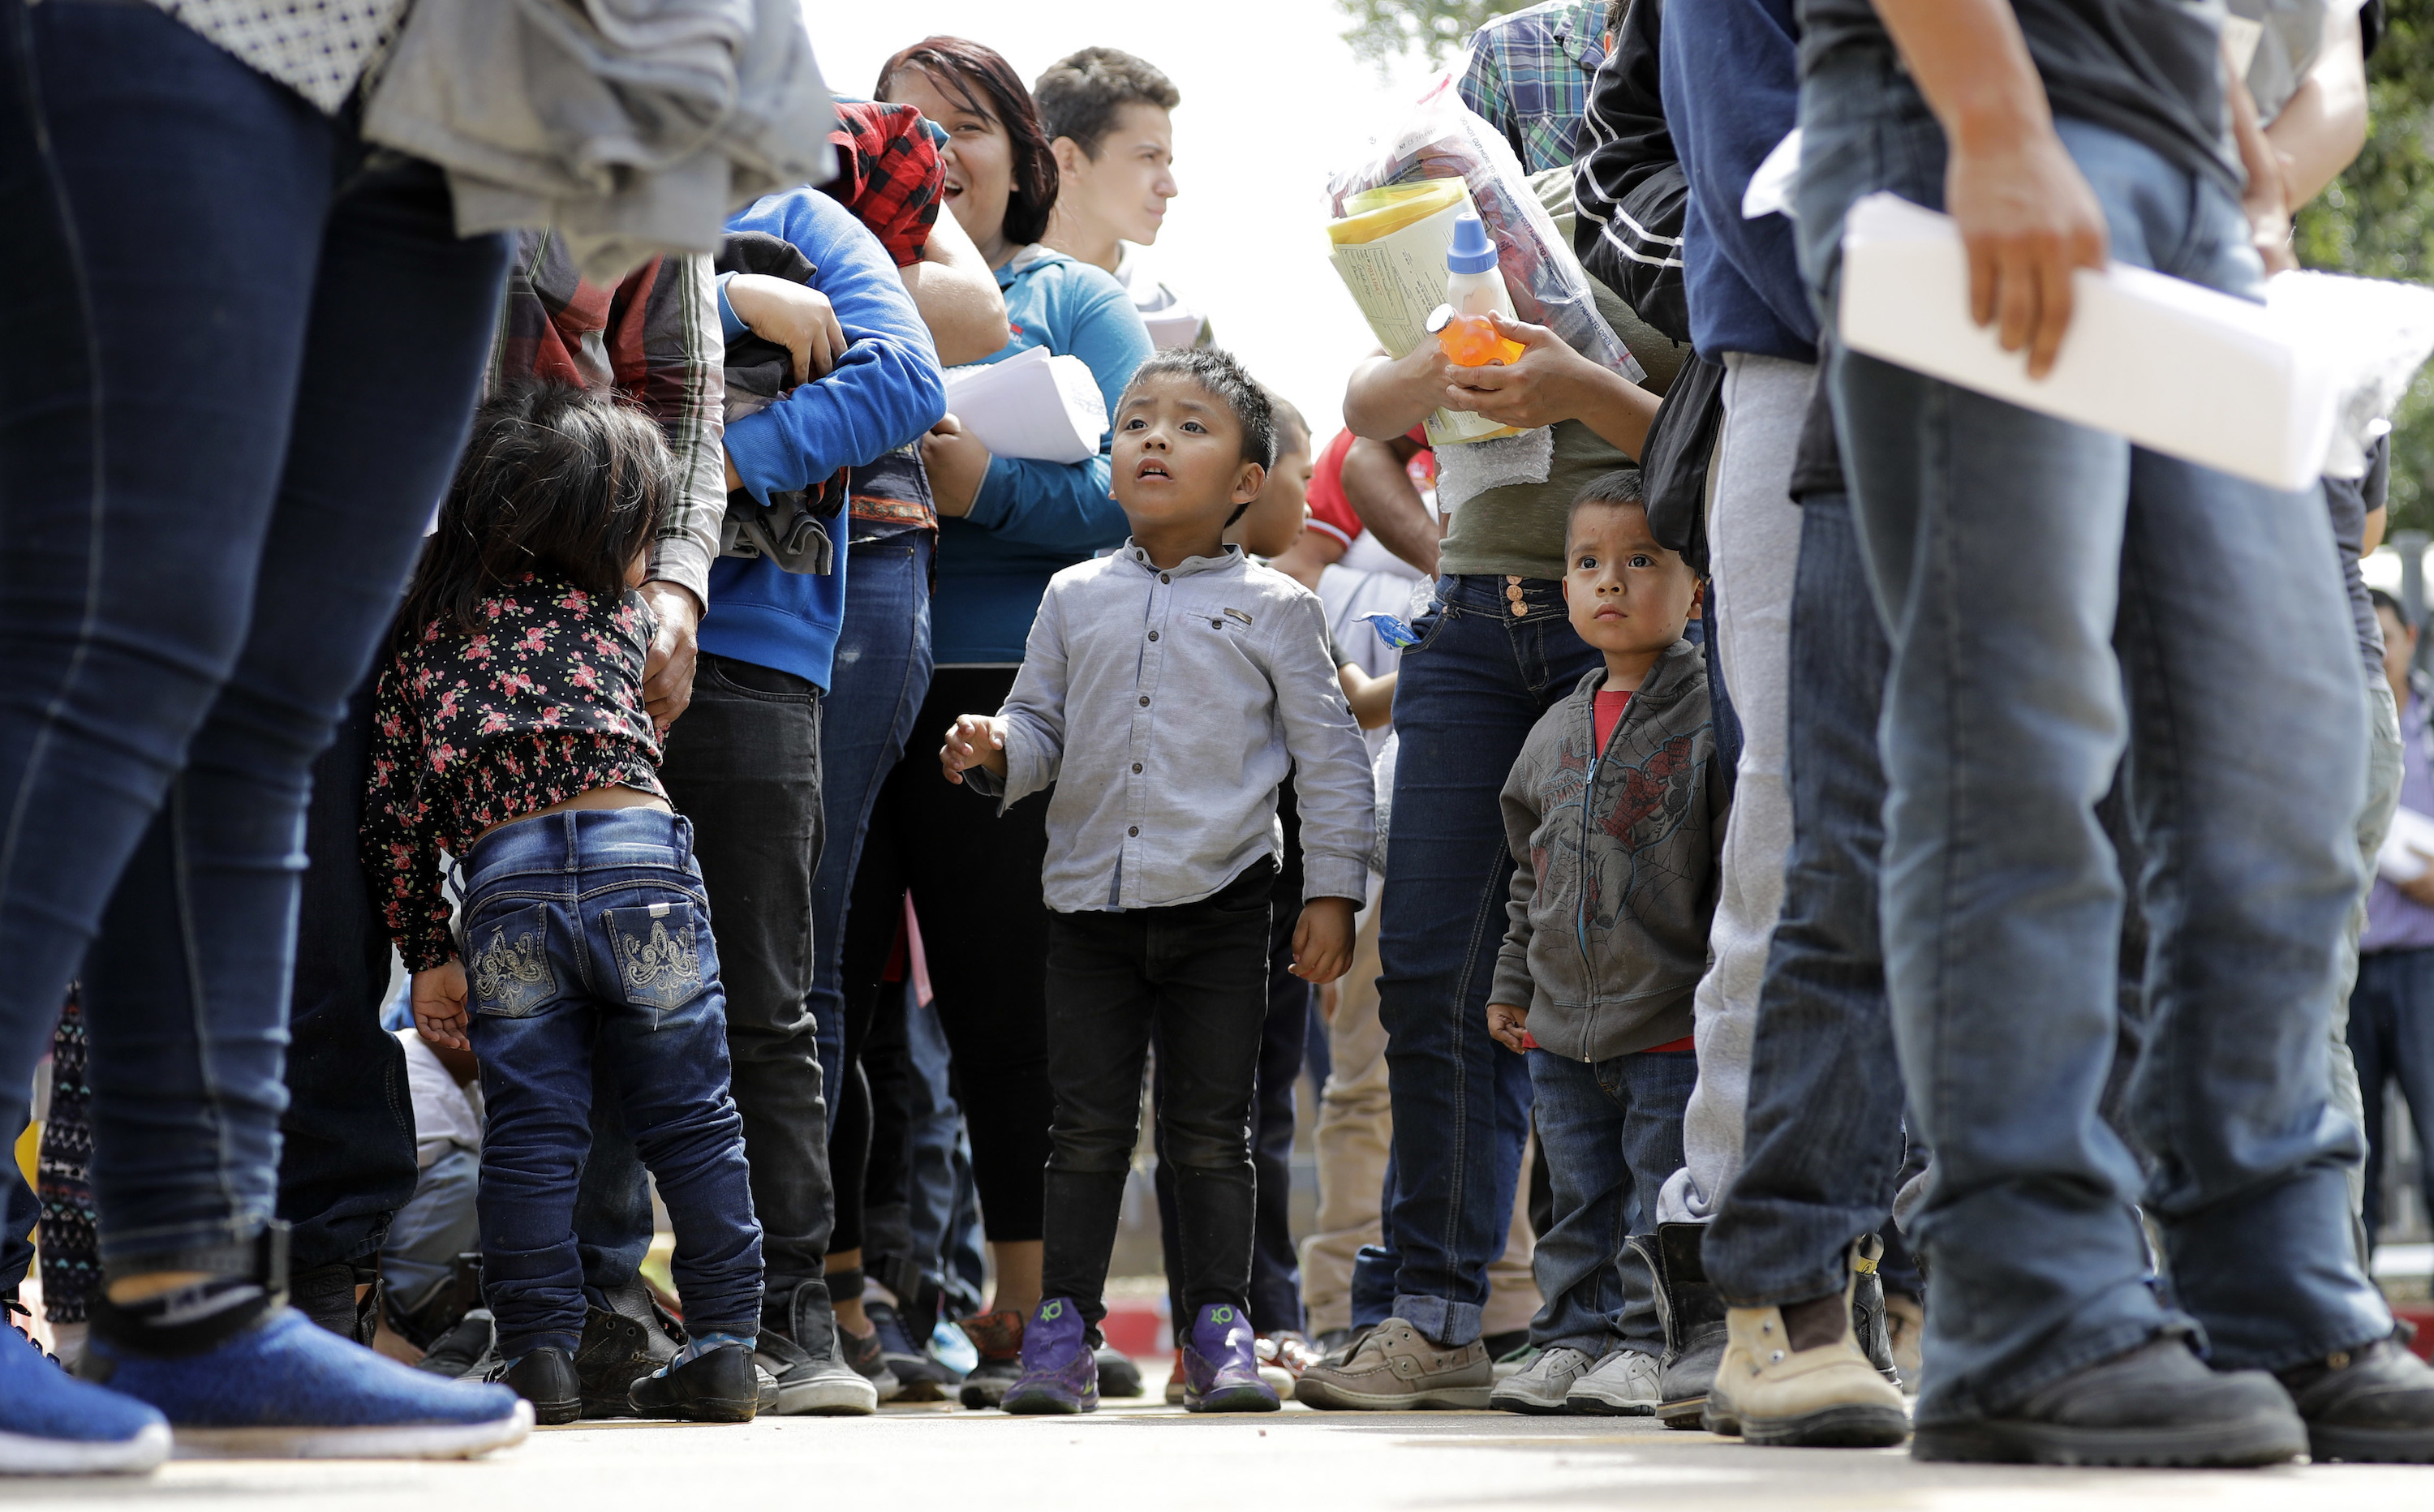 <p>Immigrant families line up to enter the central bus station after they were processed and released by U.S. Customs and Border Protection, Sunday, June 24, 2018, in McAllen, Texas.</p>